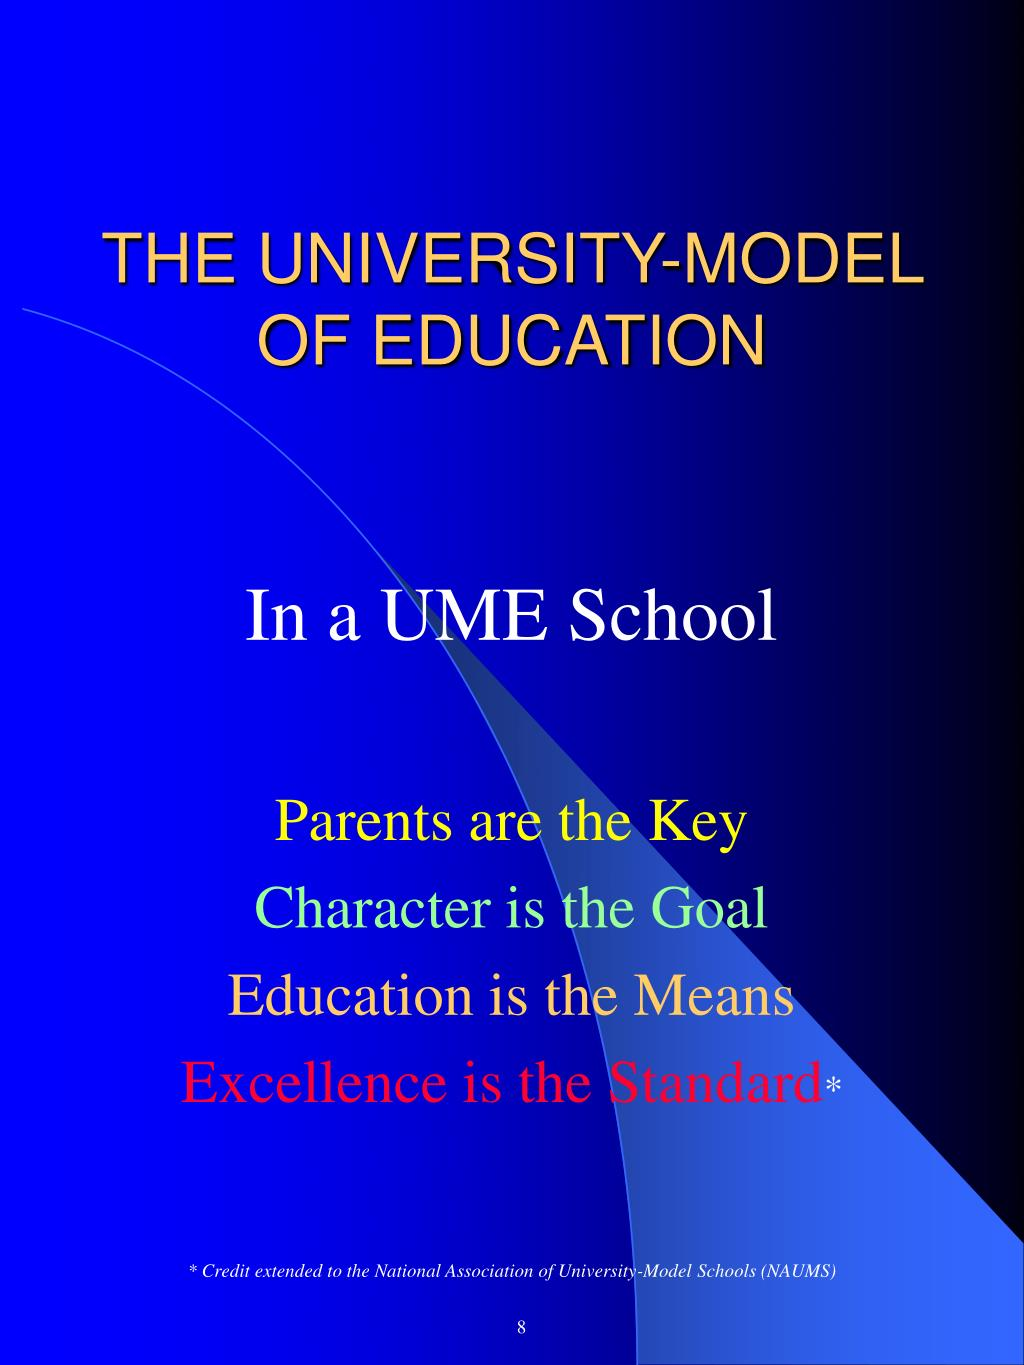 THE UNIVERSITY-MODEL OF EDUCATION